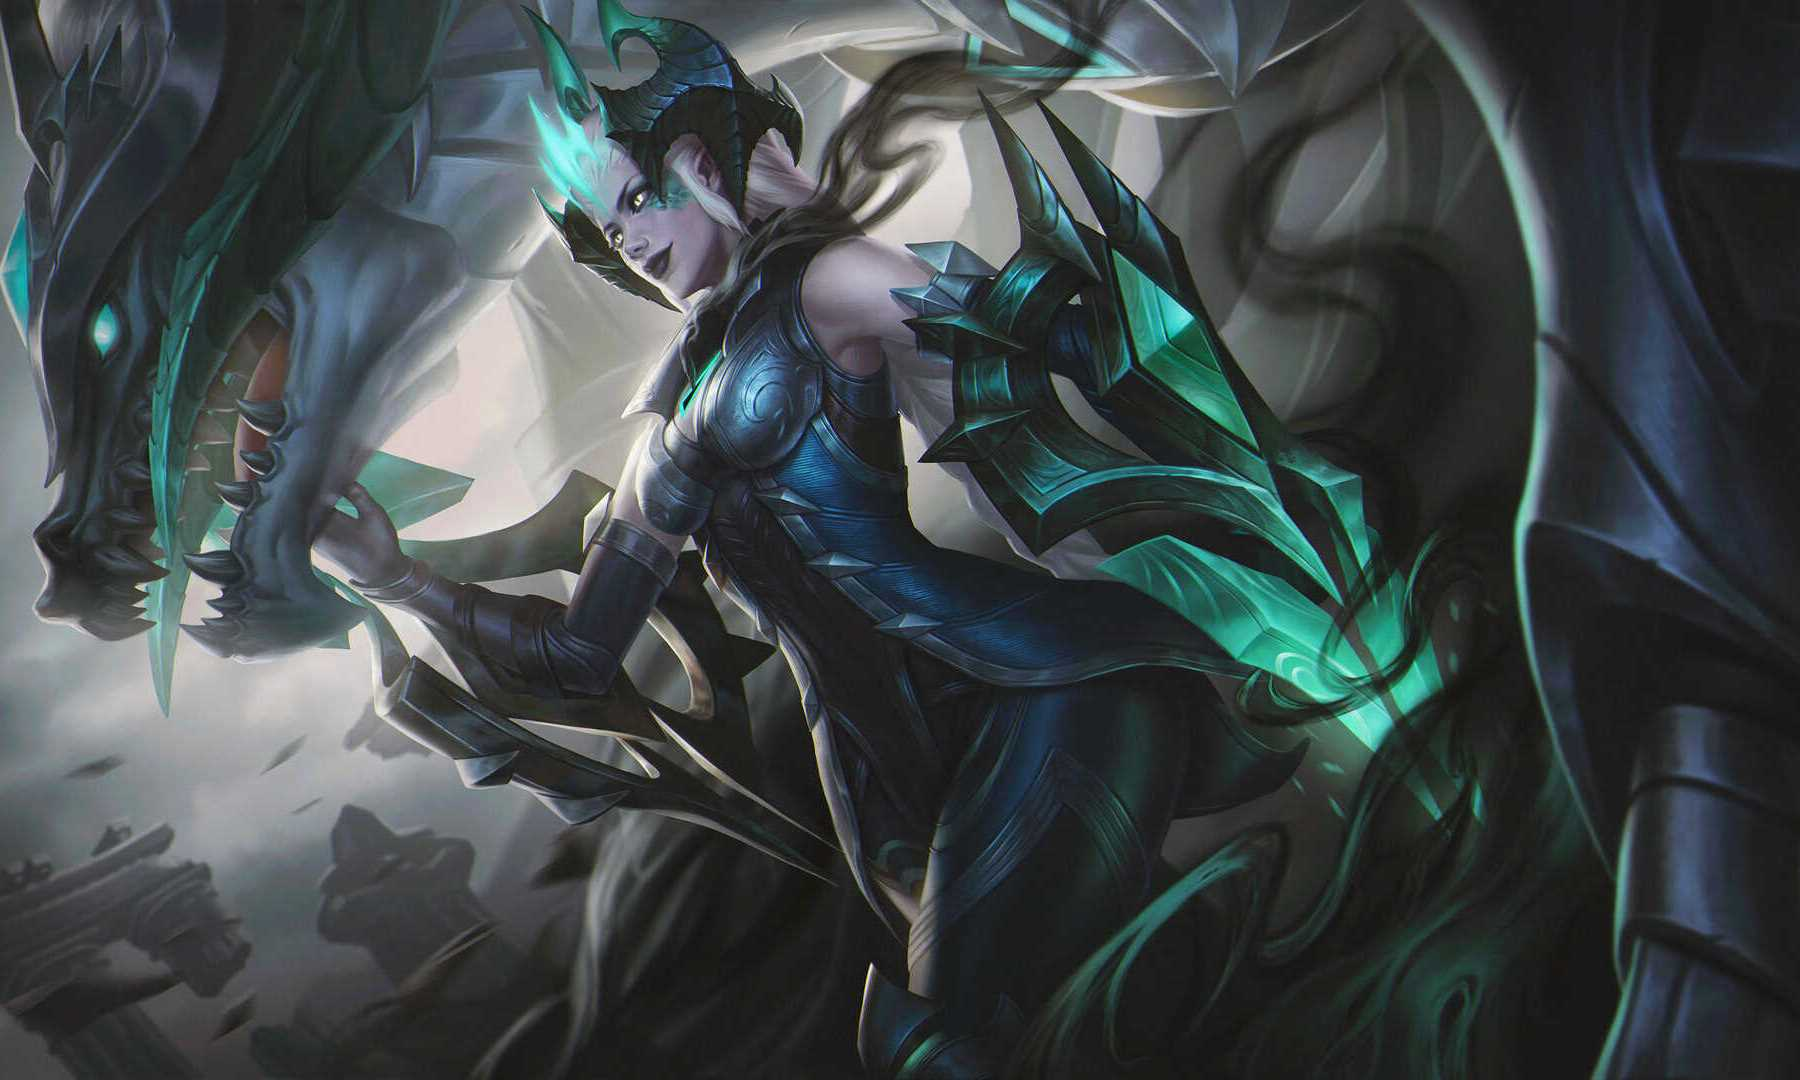 League Of Legends Shyvana Hd 4k Wallpaper, Image, Photo And Background Games